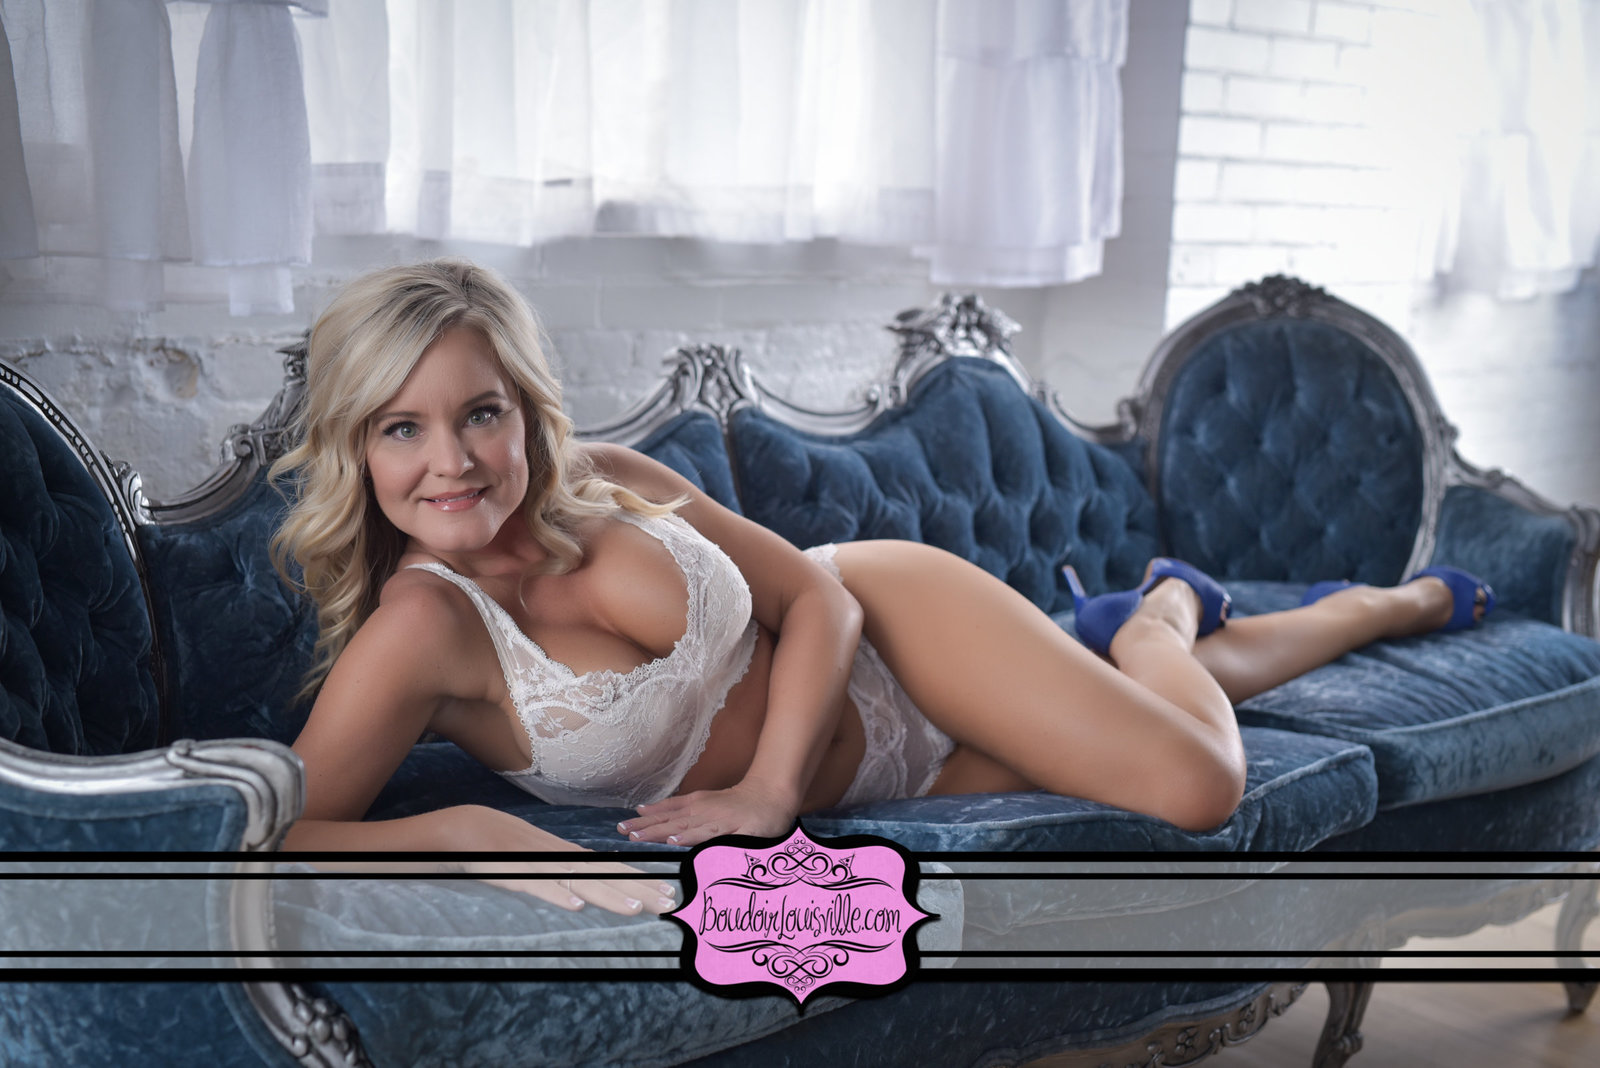 Boudoir Louisville - Boudoir Photo Studio-8